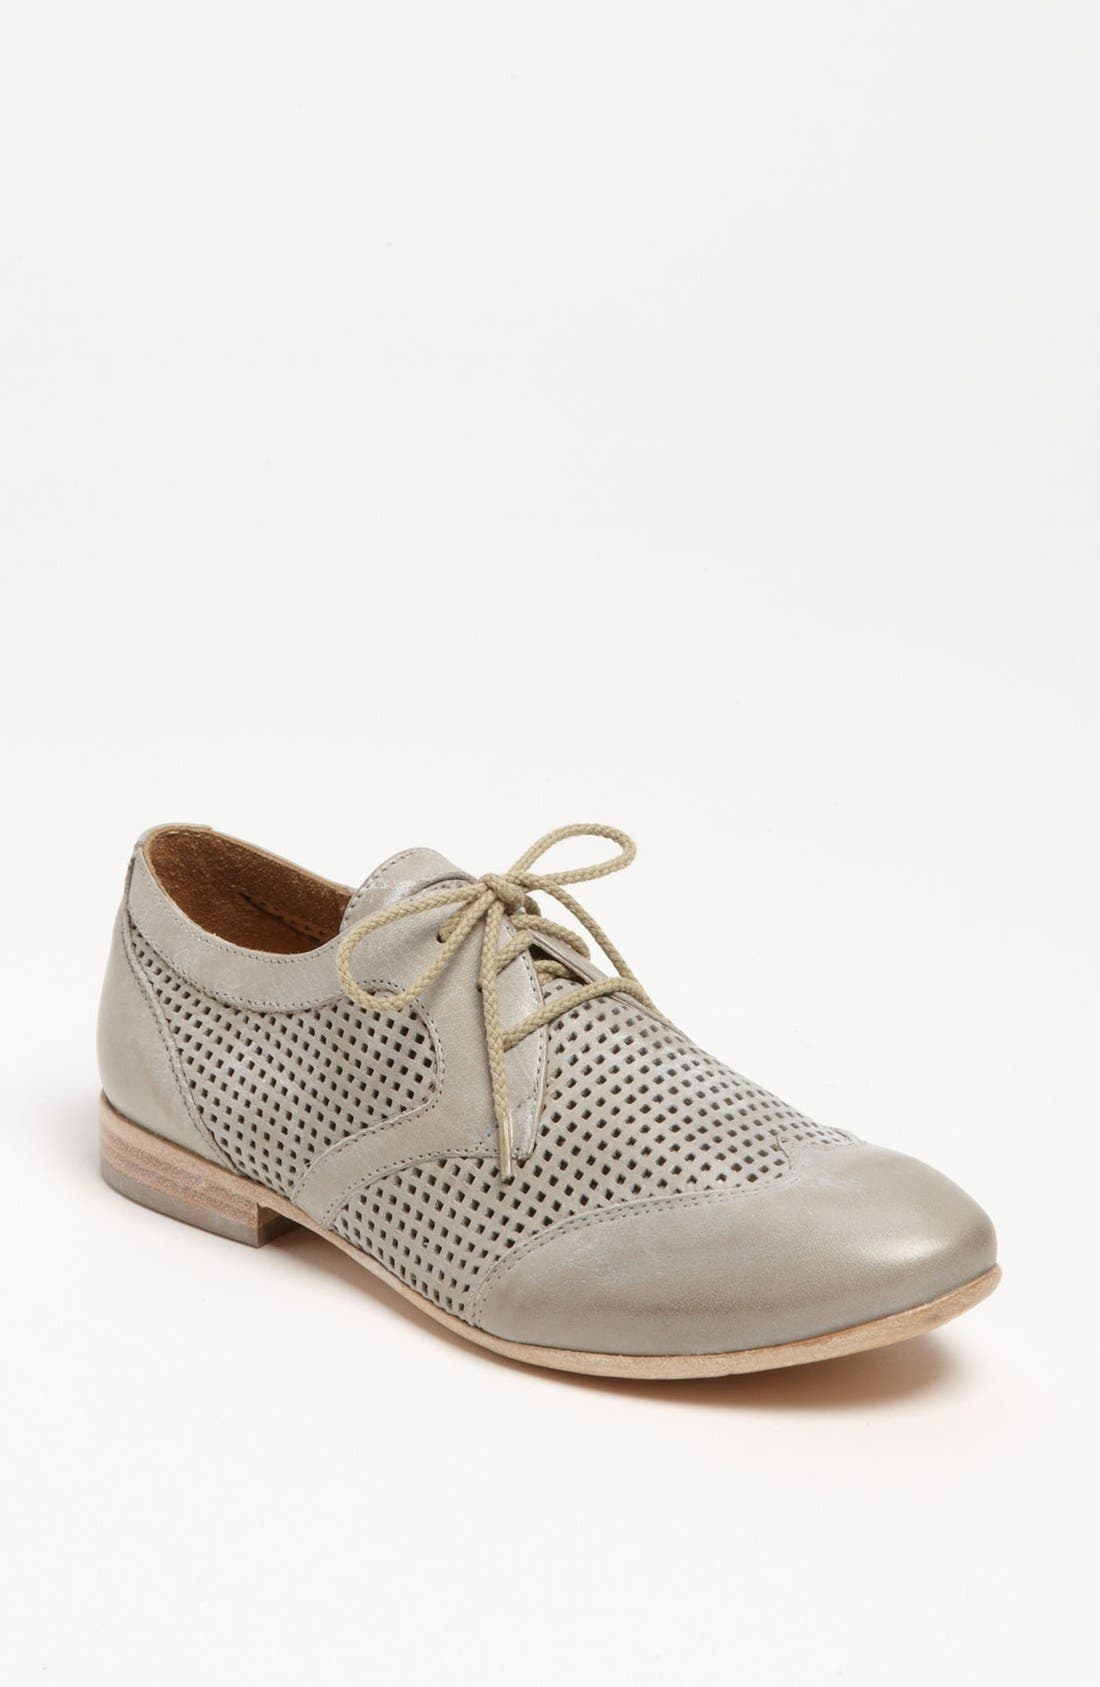 Main Image - Giove Perforated Oxford